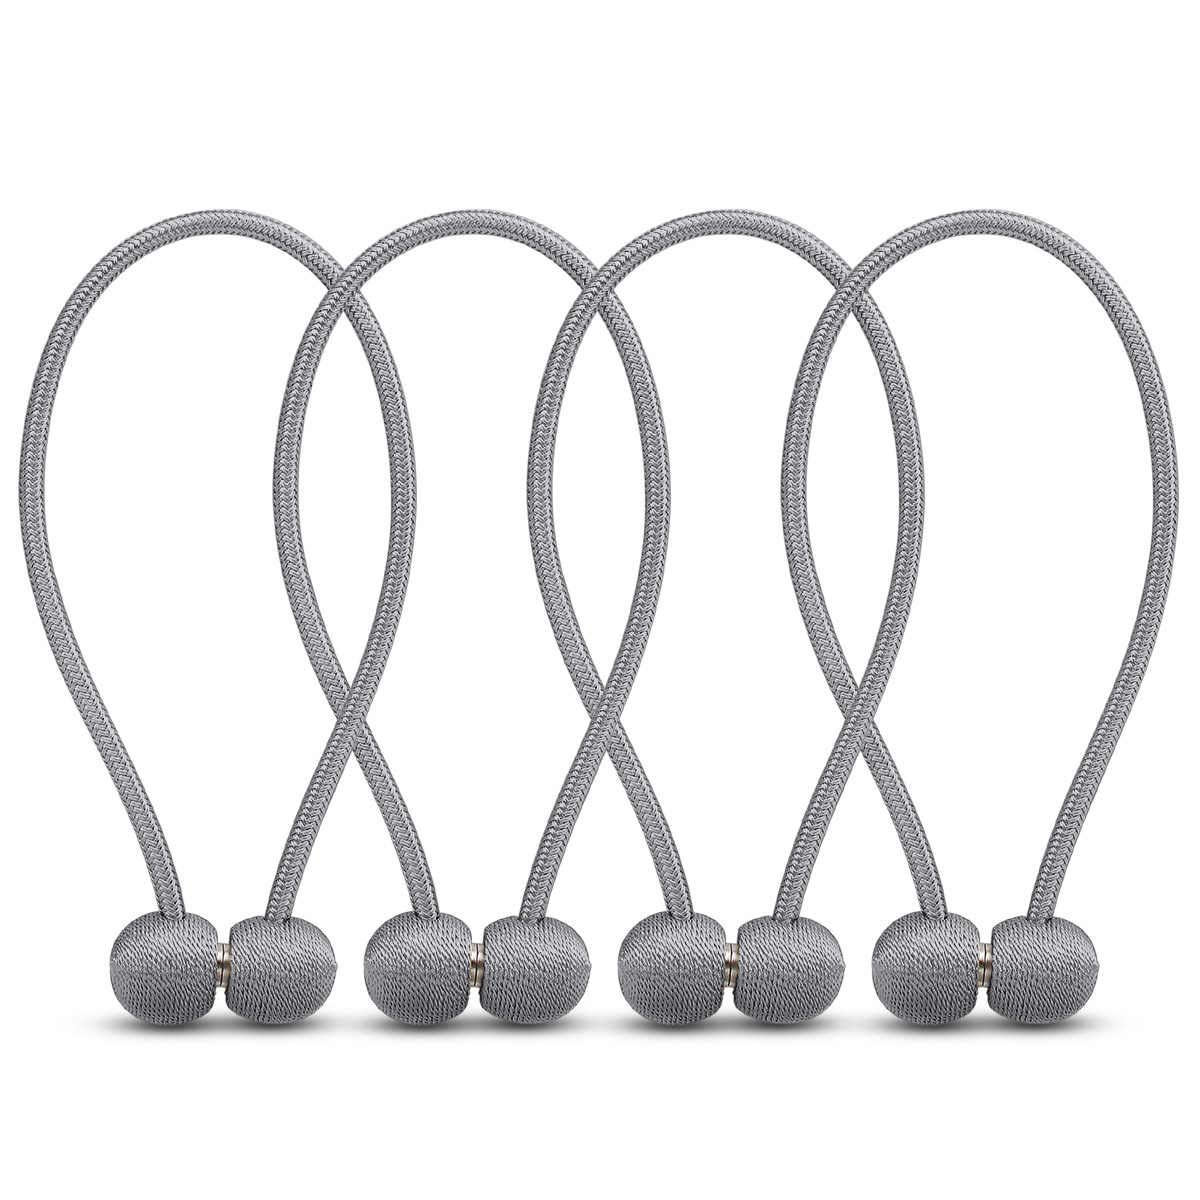 euow Window Curtain Buckle(4packs) Magnetic Curtain Tiebacks Buckle Simple Style Holdbacks,Decorative Rope Baffle/Used for Curtain Bed Curtain Net Fixing. (Gray)